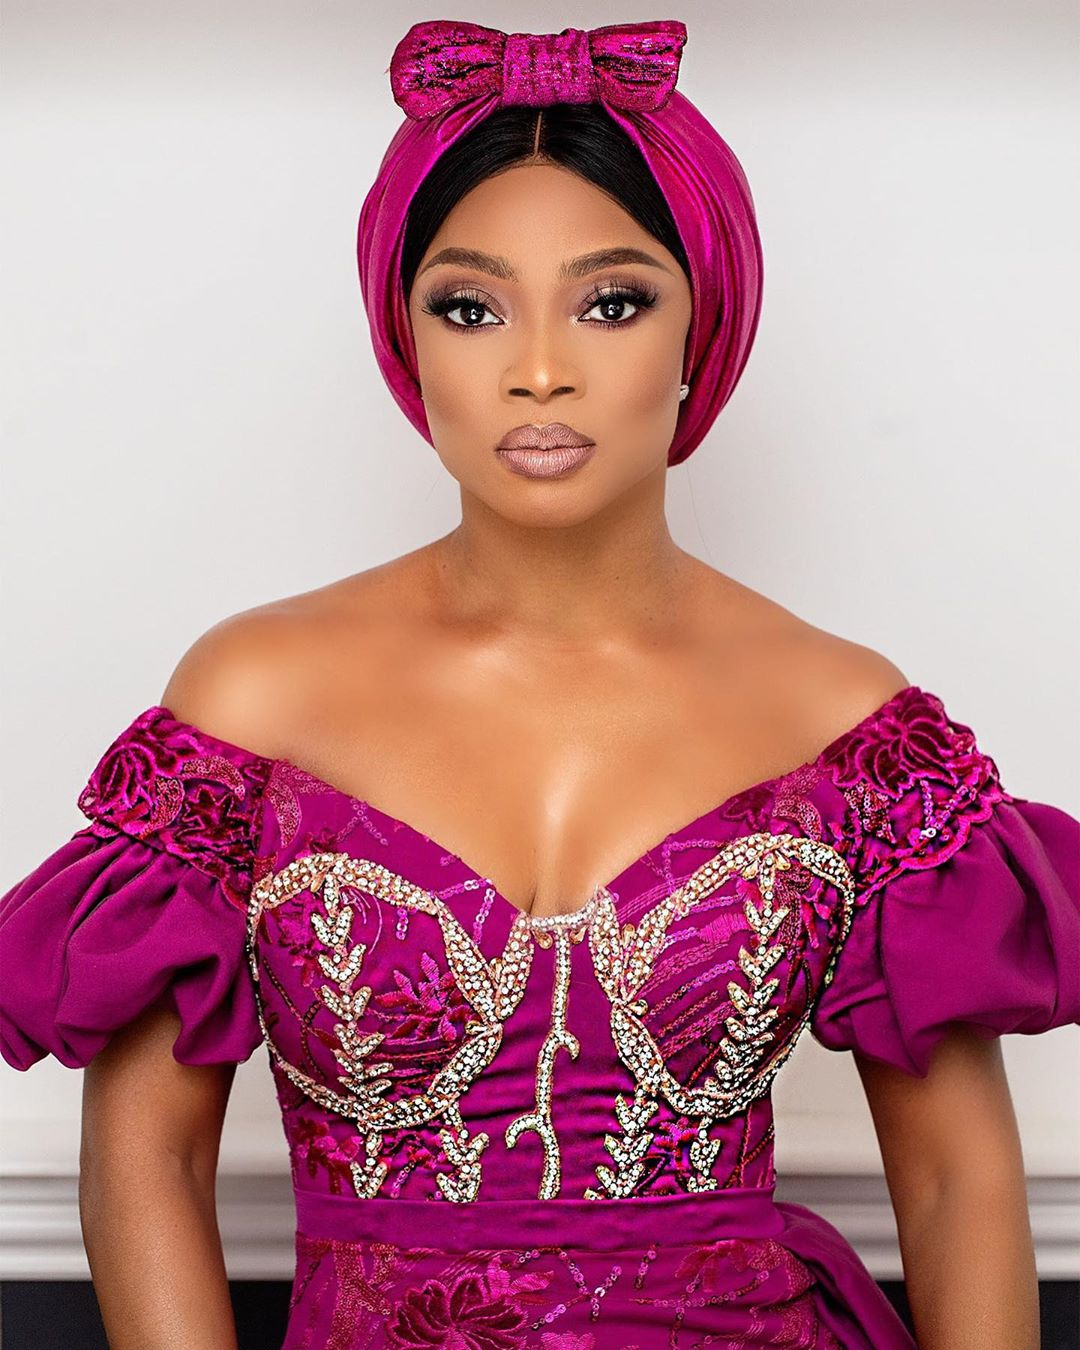 toke-makinwa-bold-face-beat-on-turban-style-rave